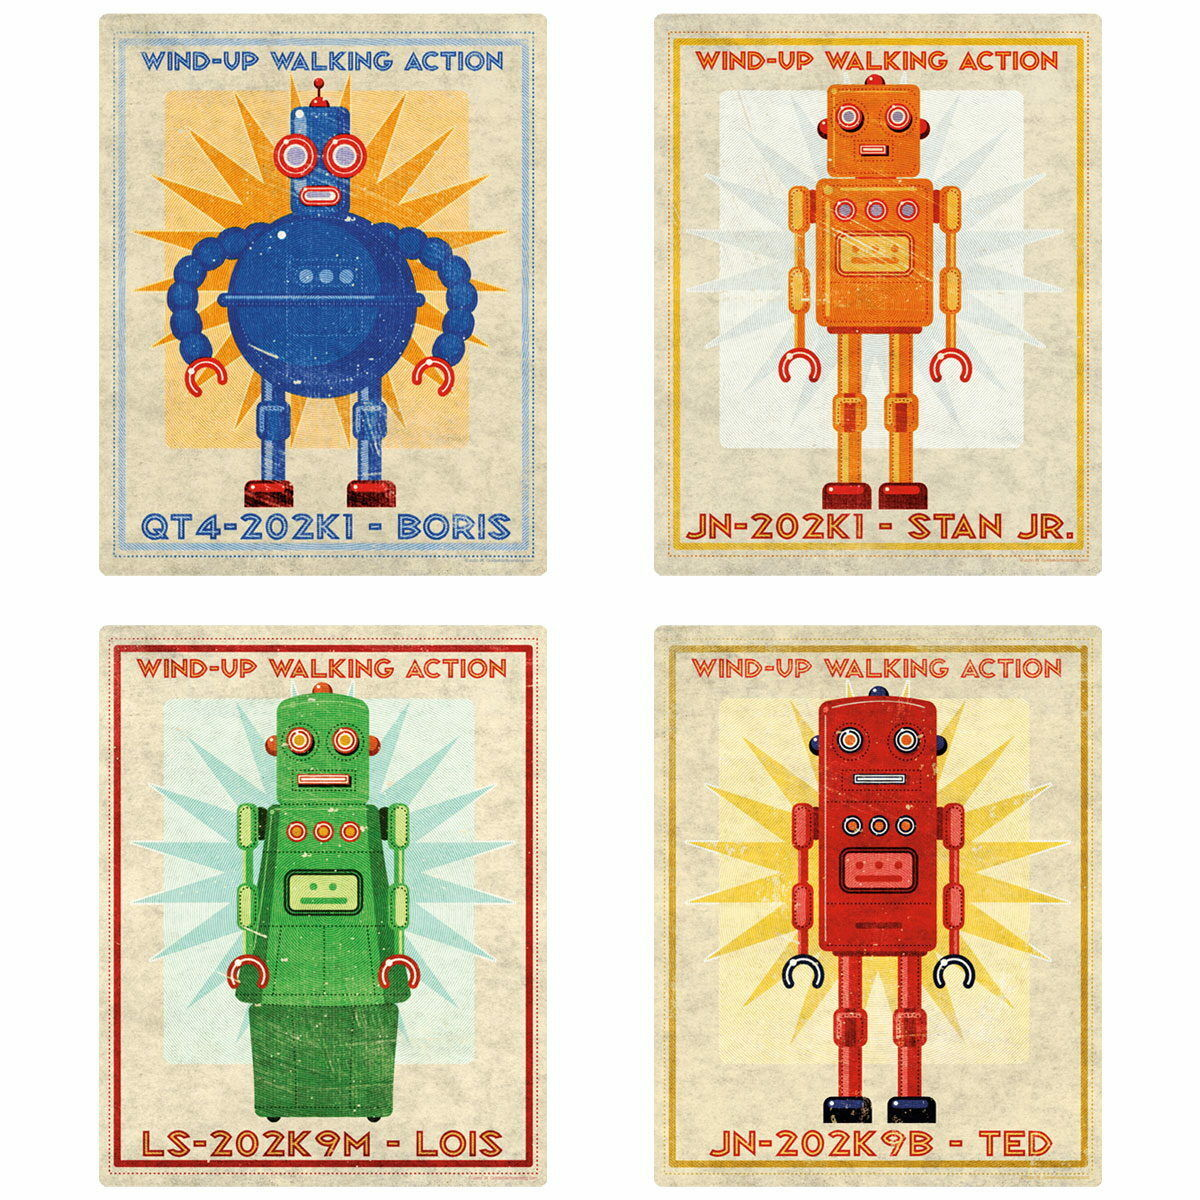 Tin Toy Retro Robot Box Art Wall Decal Set Vintage Style Home Decor Bundle